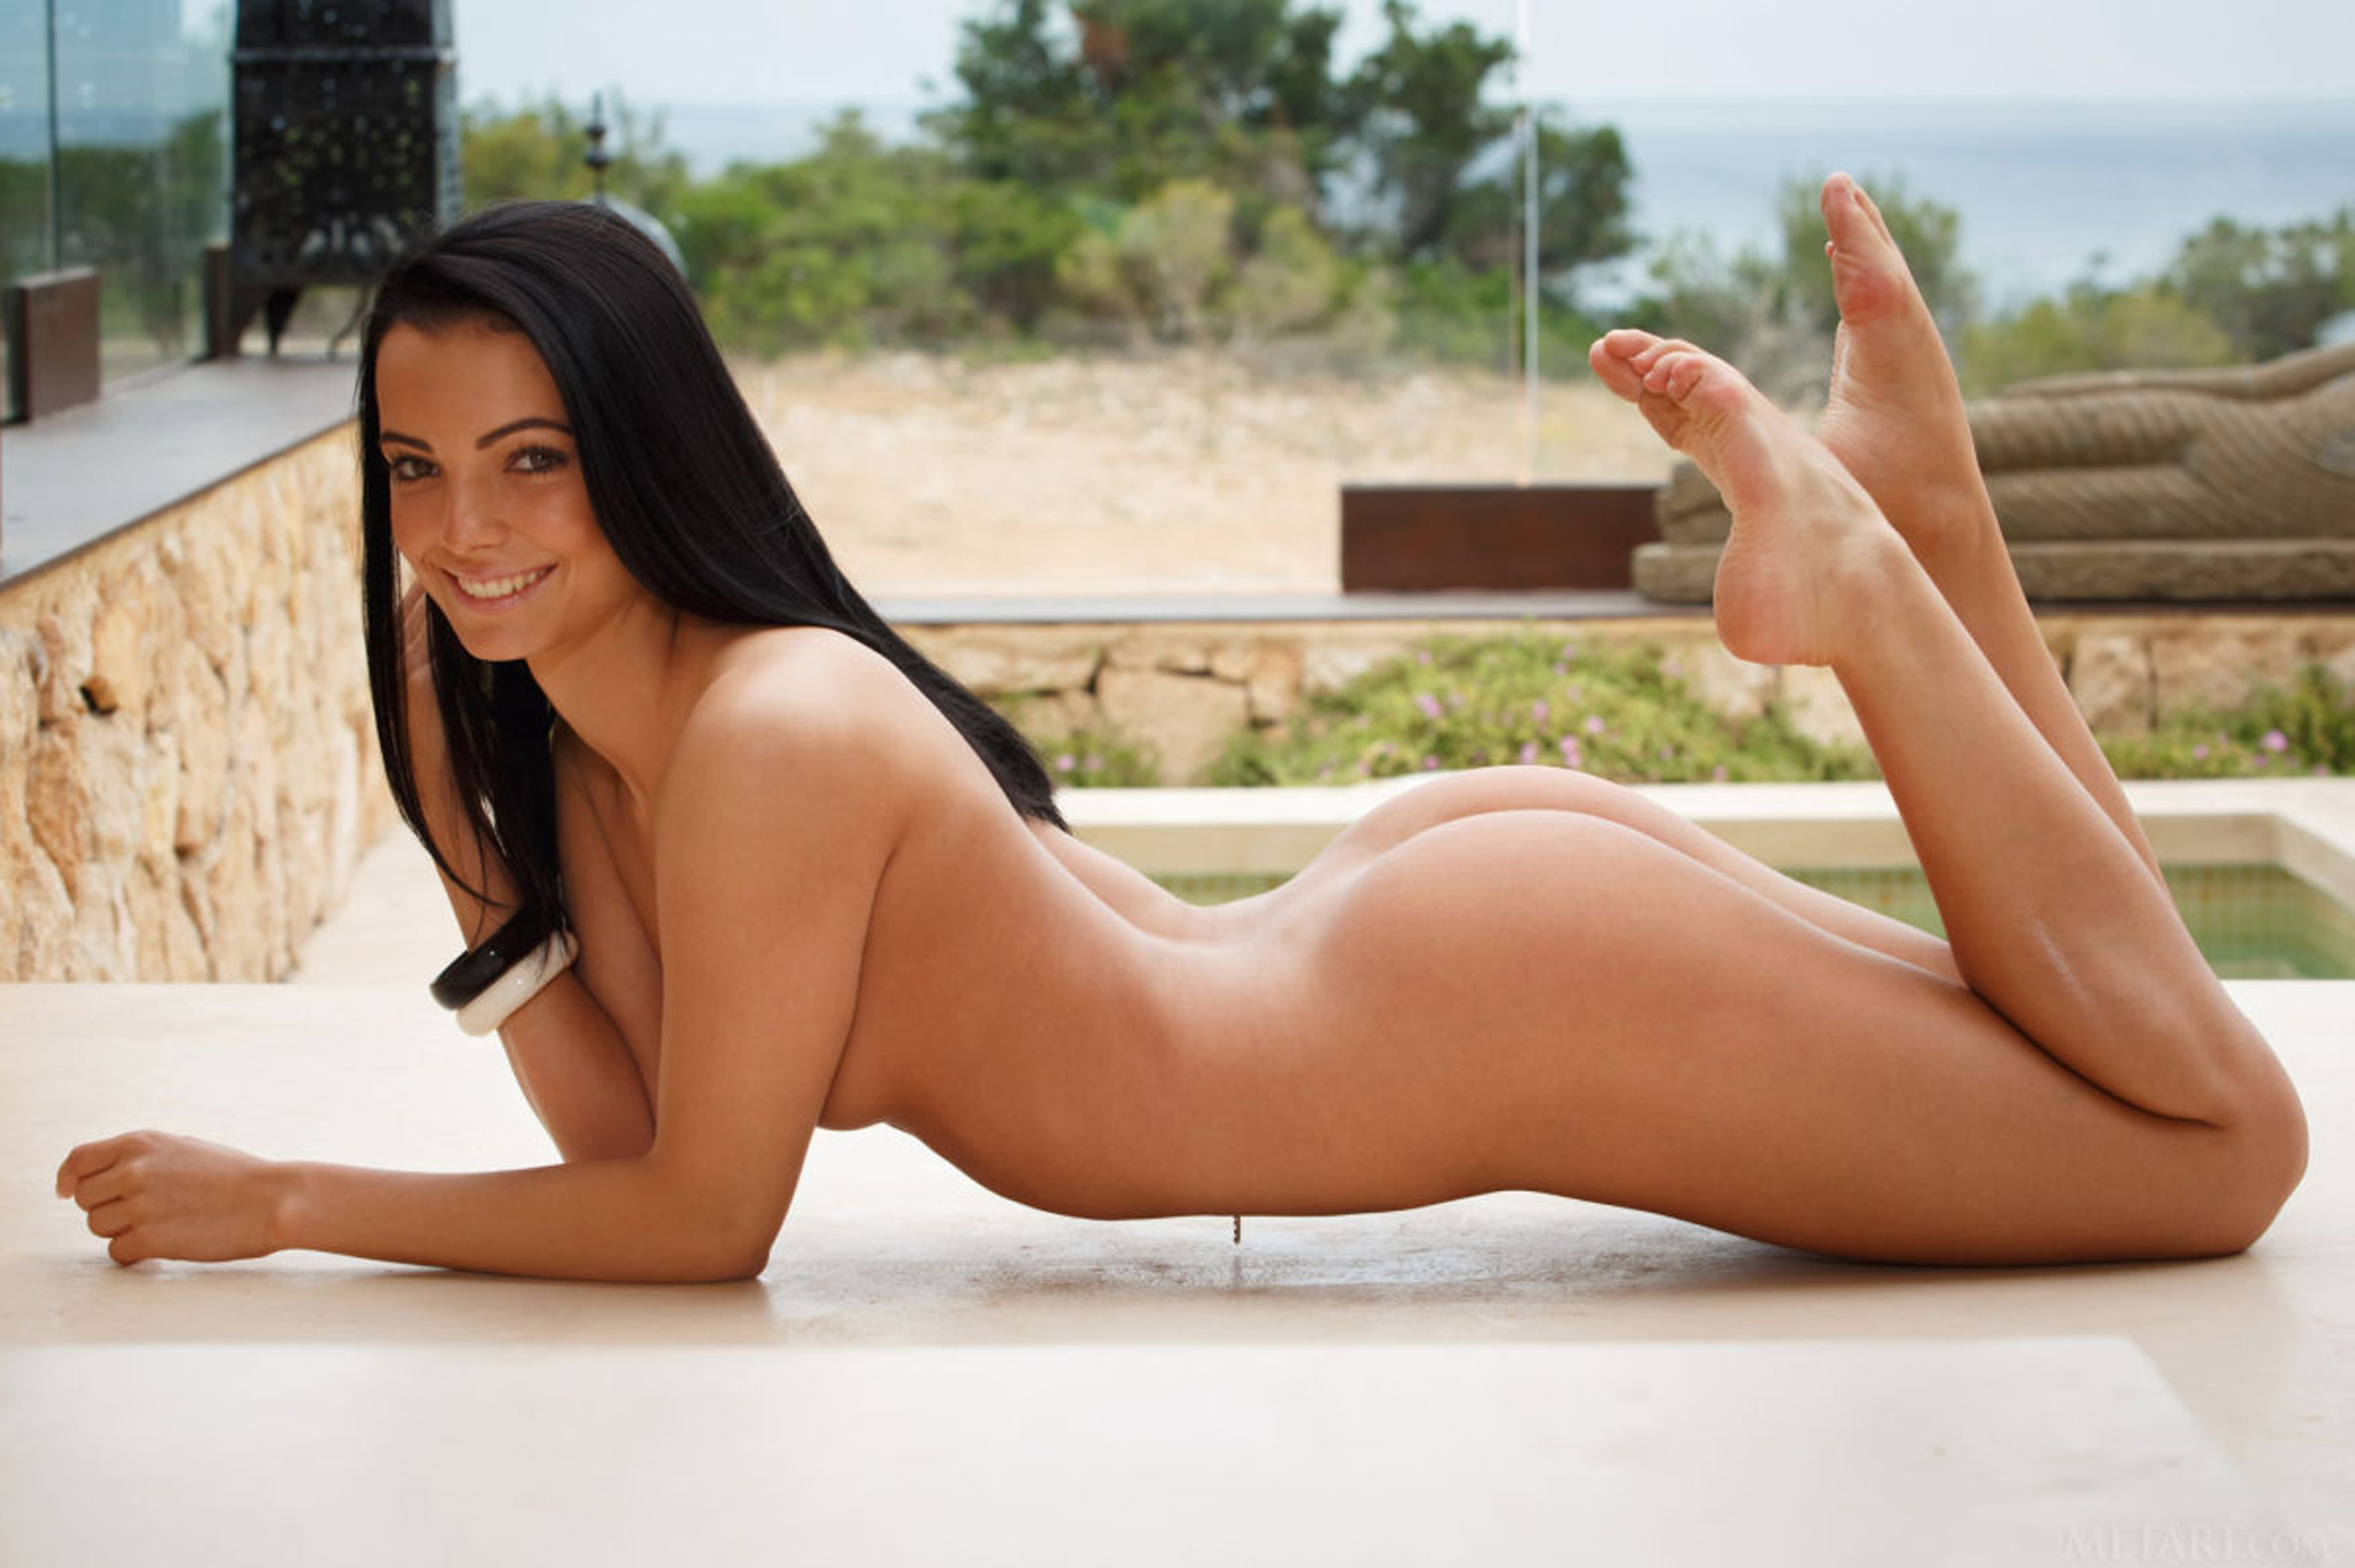 Naked babe spreading